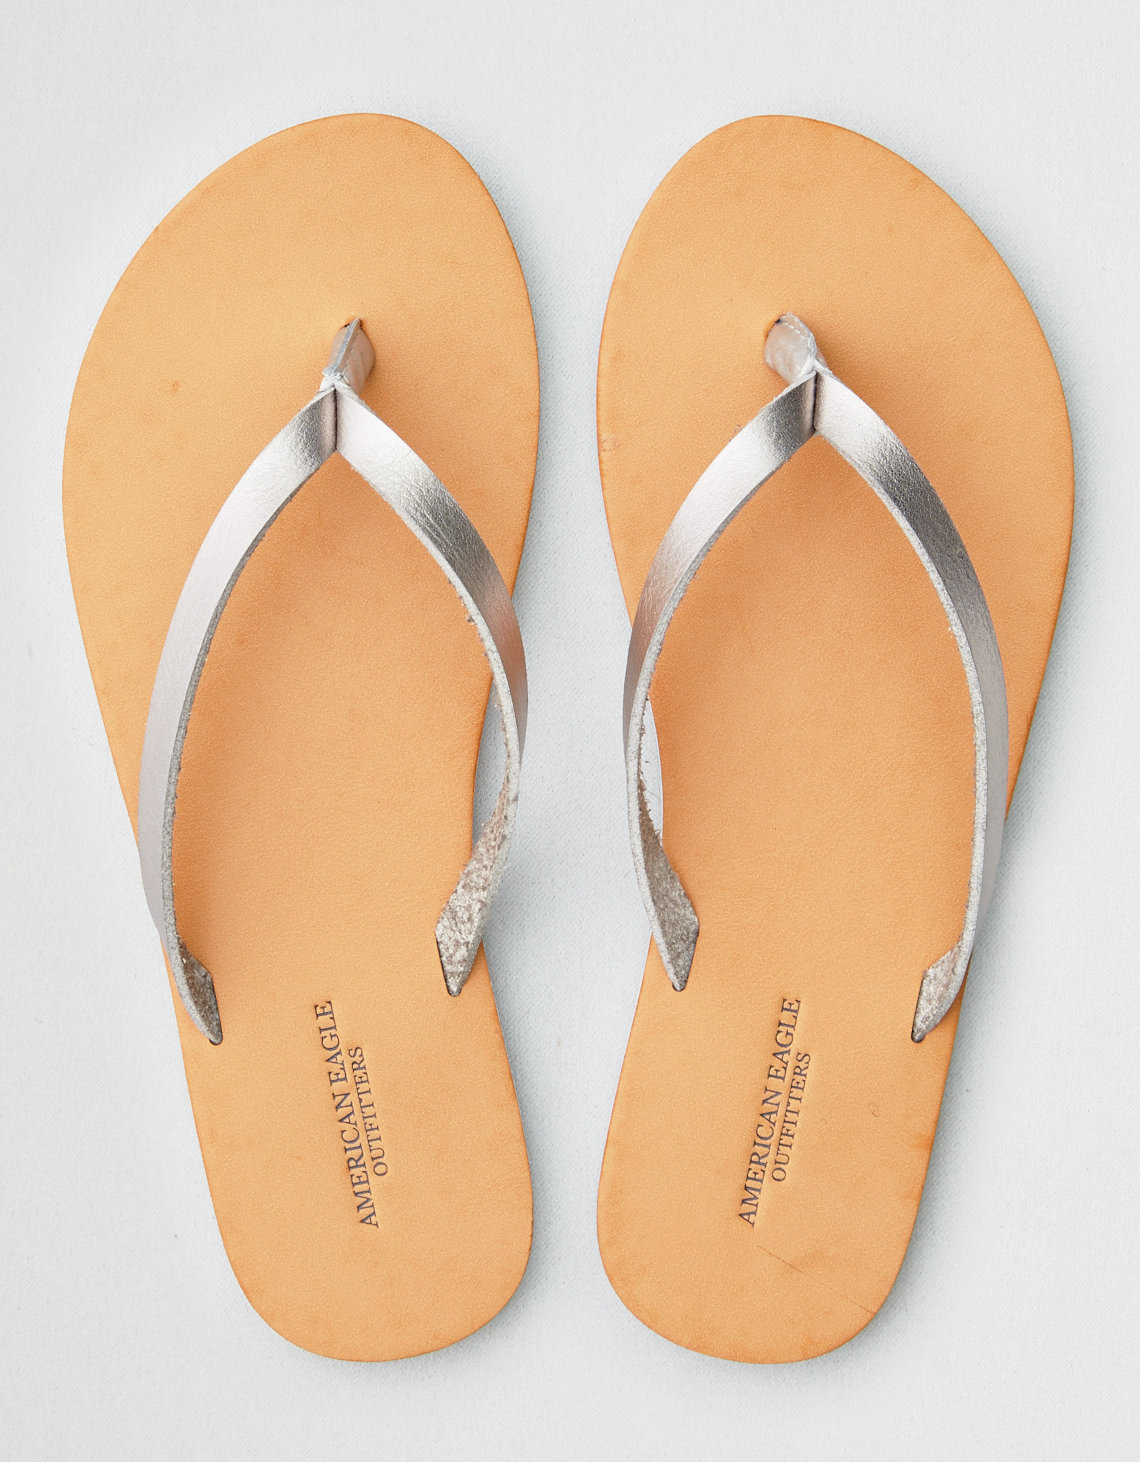 outlet websites AEO Frayed Leather Edge Flip Flop free shipping 100% authentic buy cheap best wholesale buy cheap great deals l9dNgP